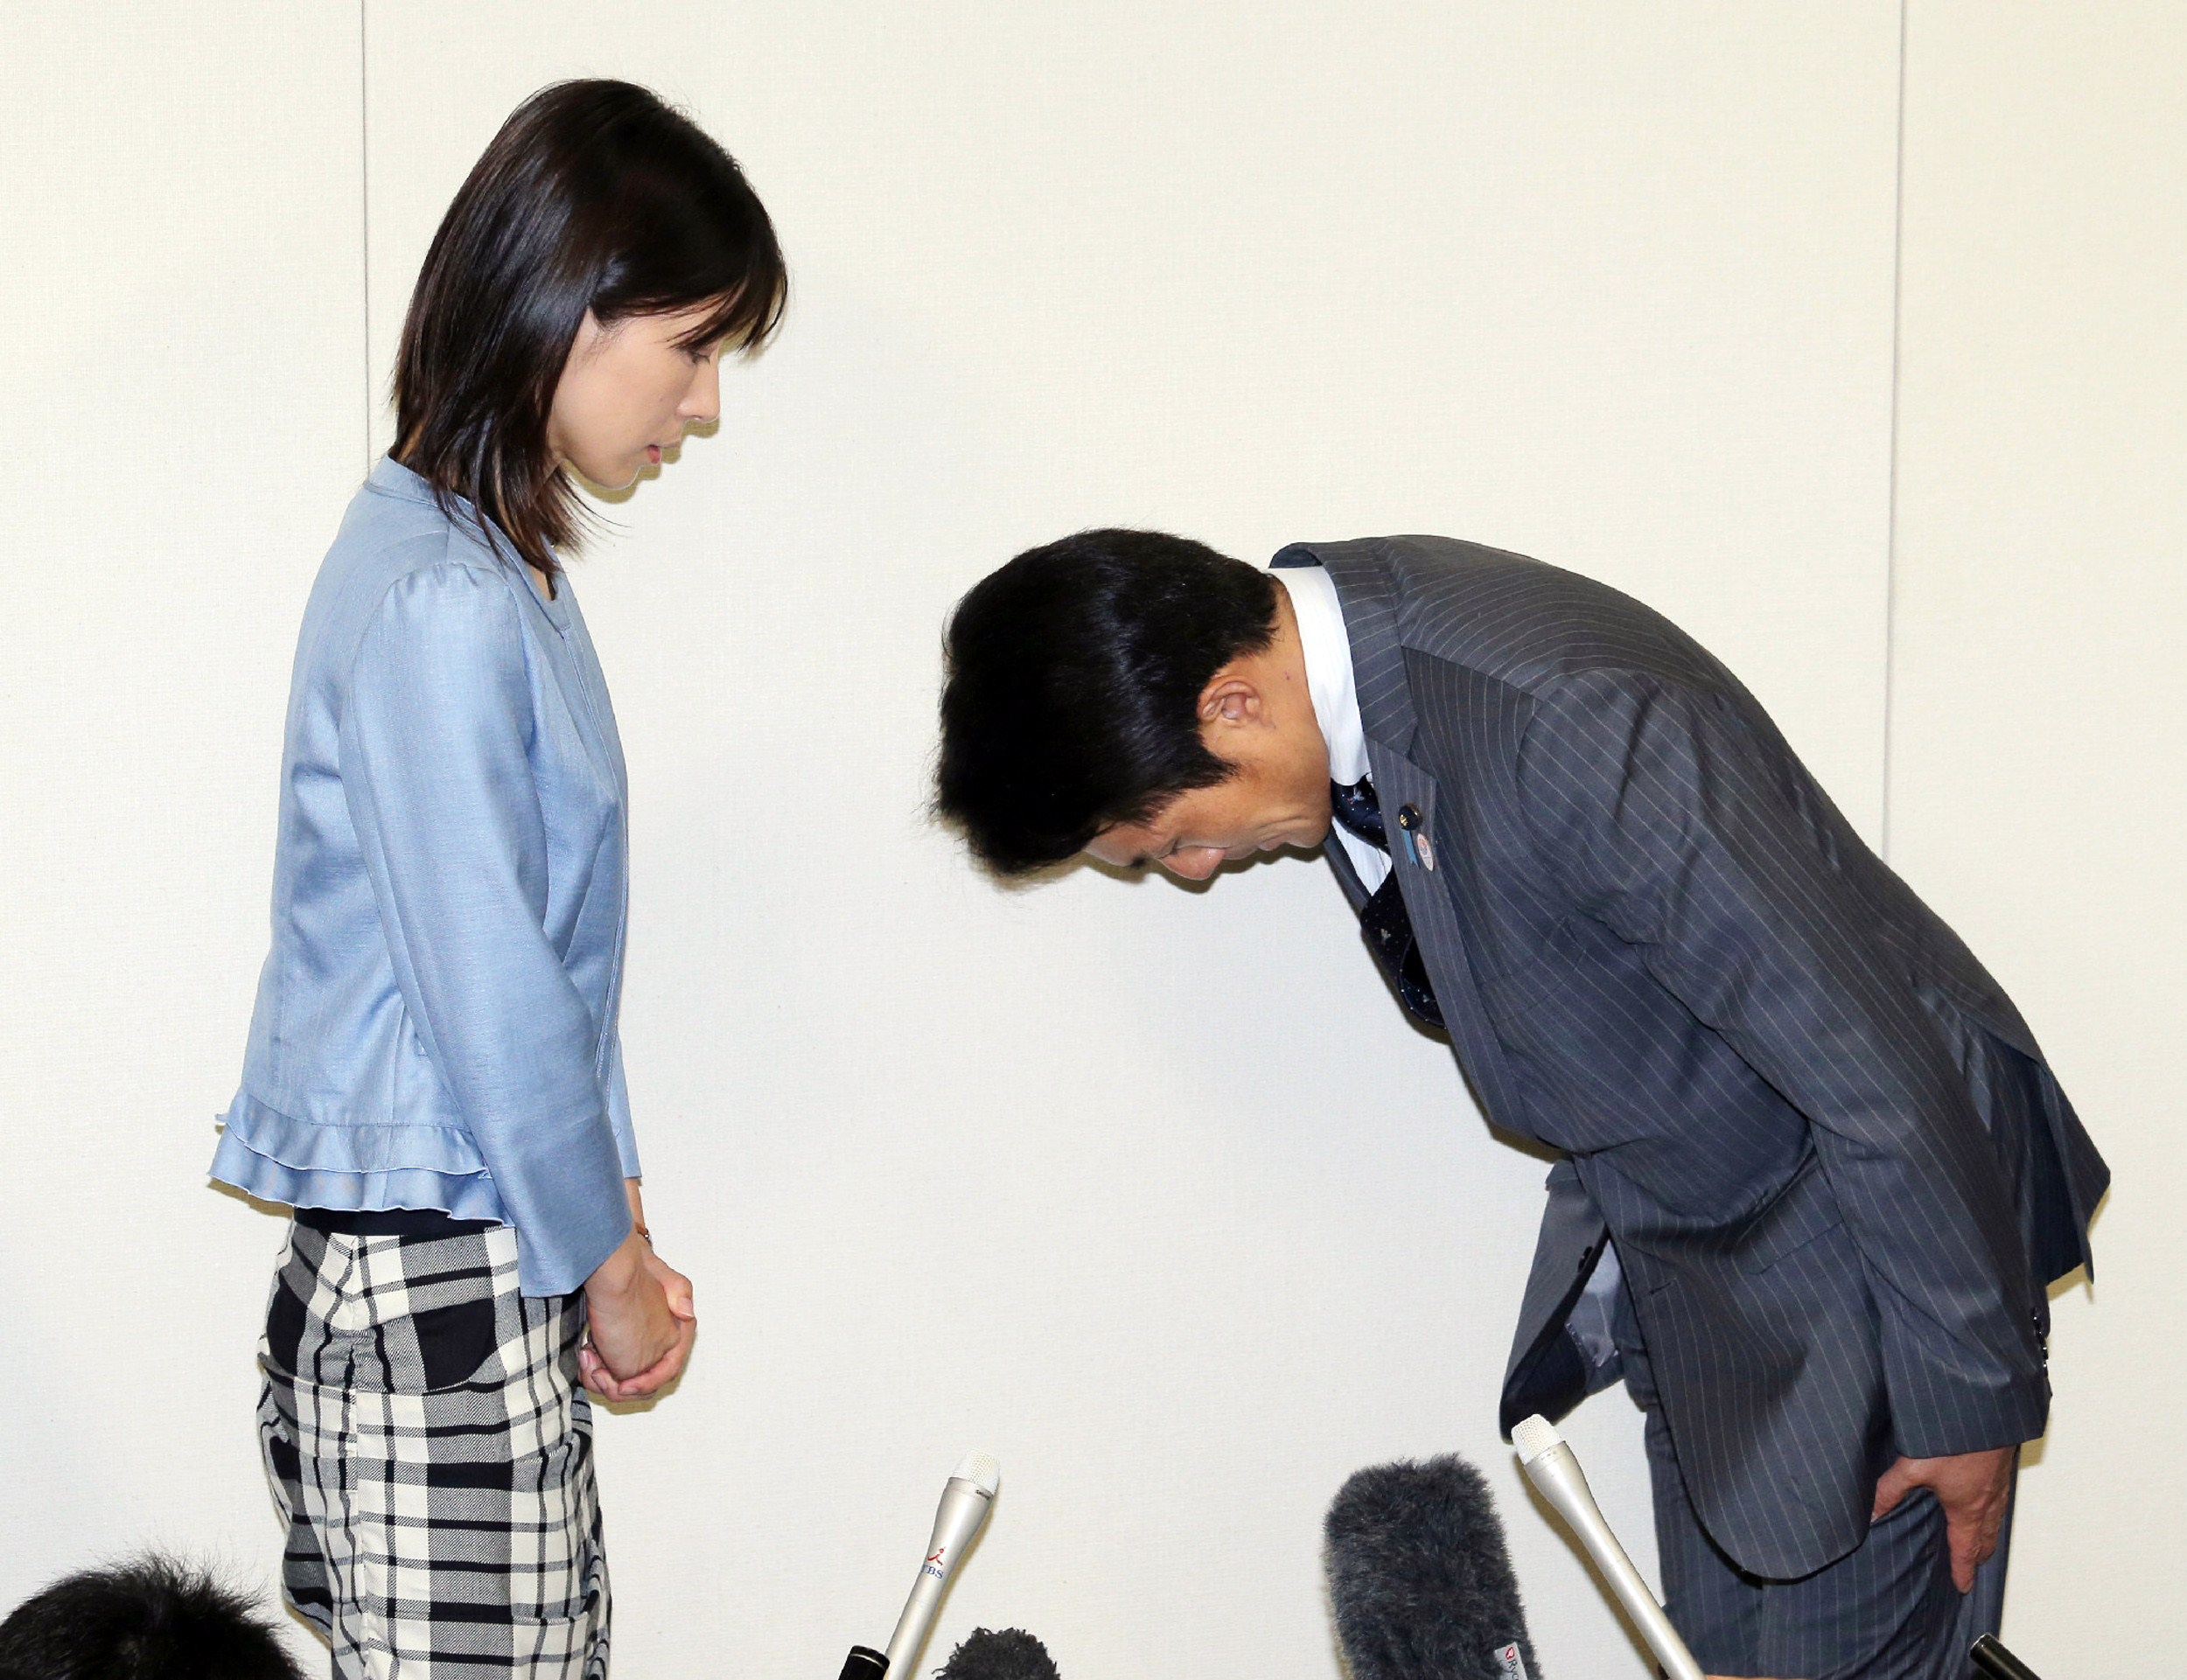 Akihiro Suzuki, a member of the Tokyo metropolitan assembly, bows to Ayaka Shiomura, a fellow assembly member, to apologize for his sexist jeer during a recent event, at Tokyo city hall on June 23, 2014.